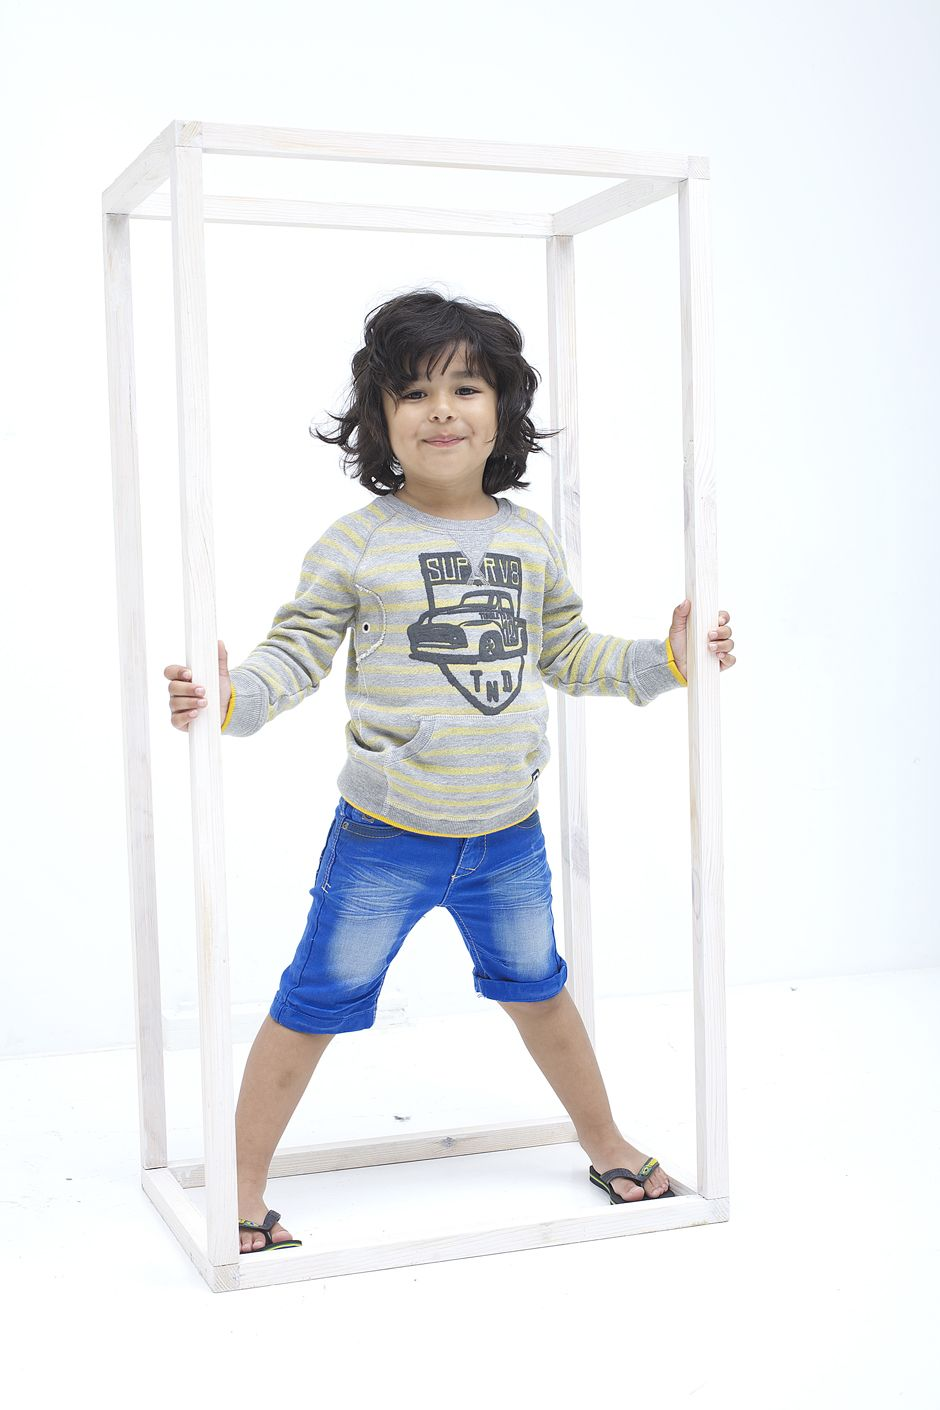 tumble 'n dry #kidsfashion #kids #childrenswear